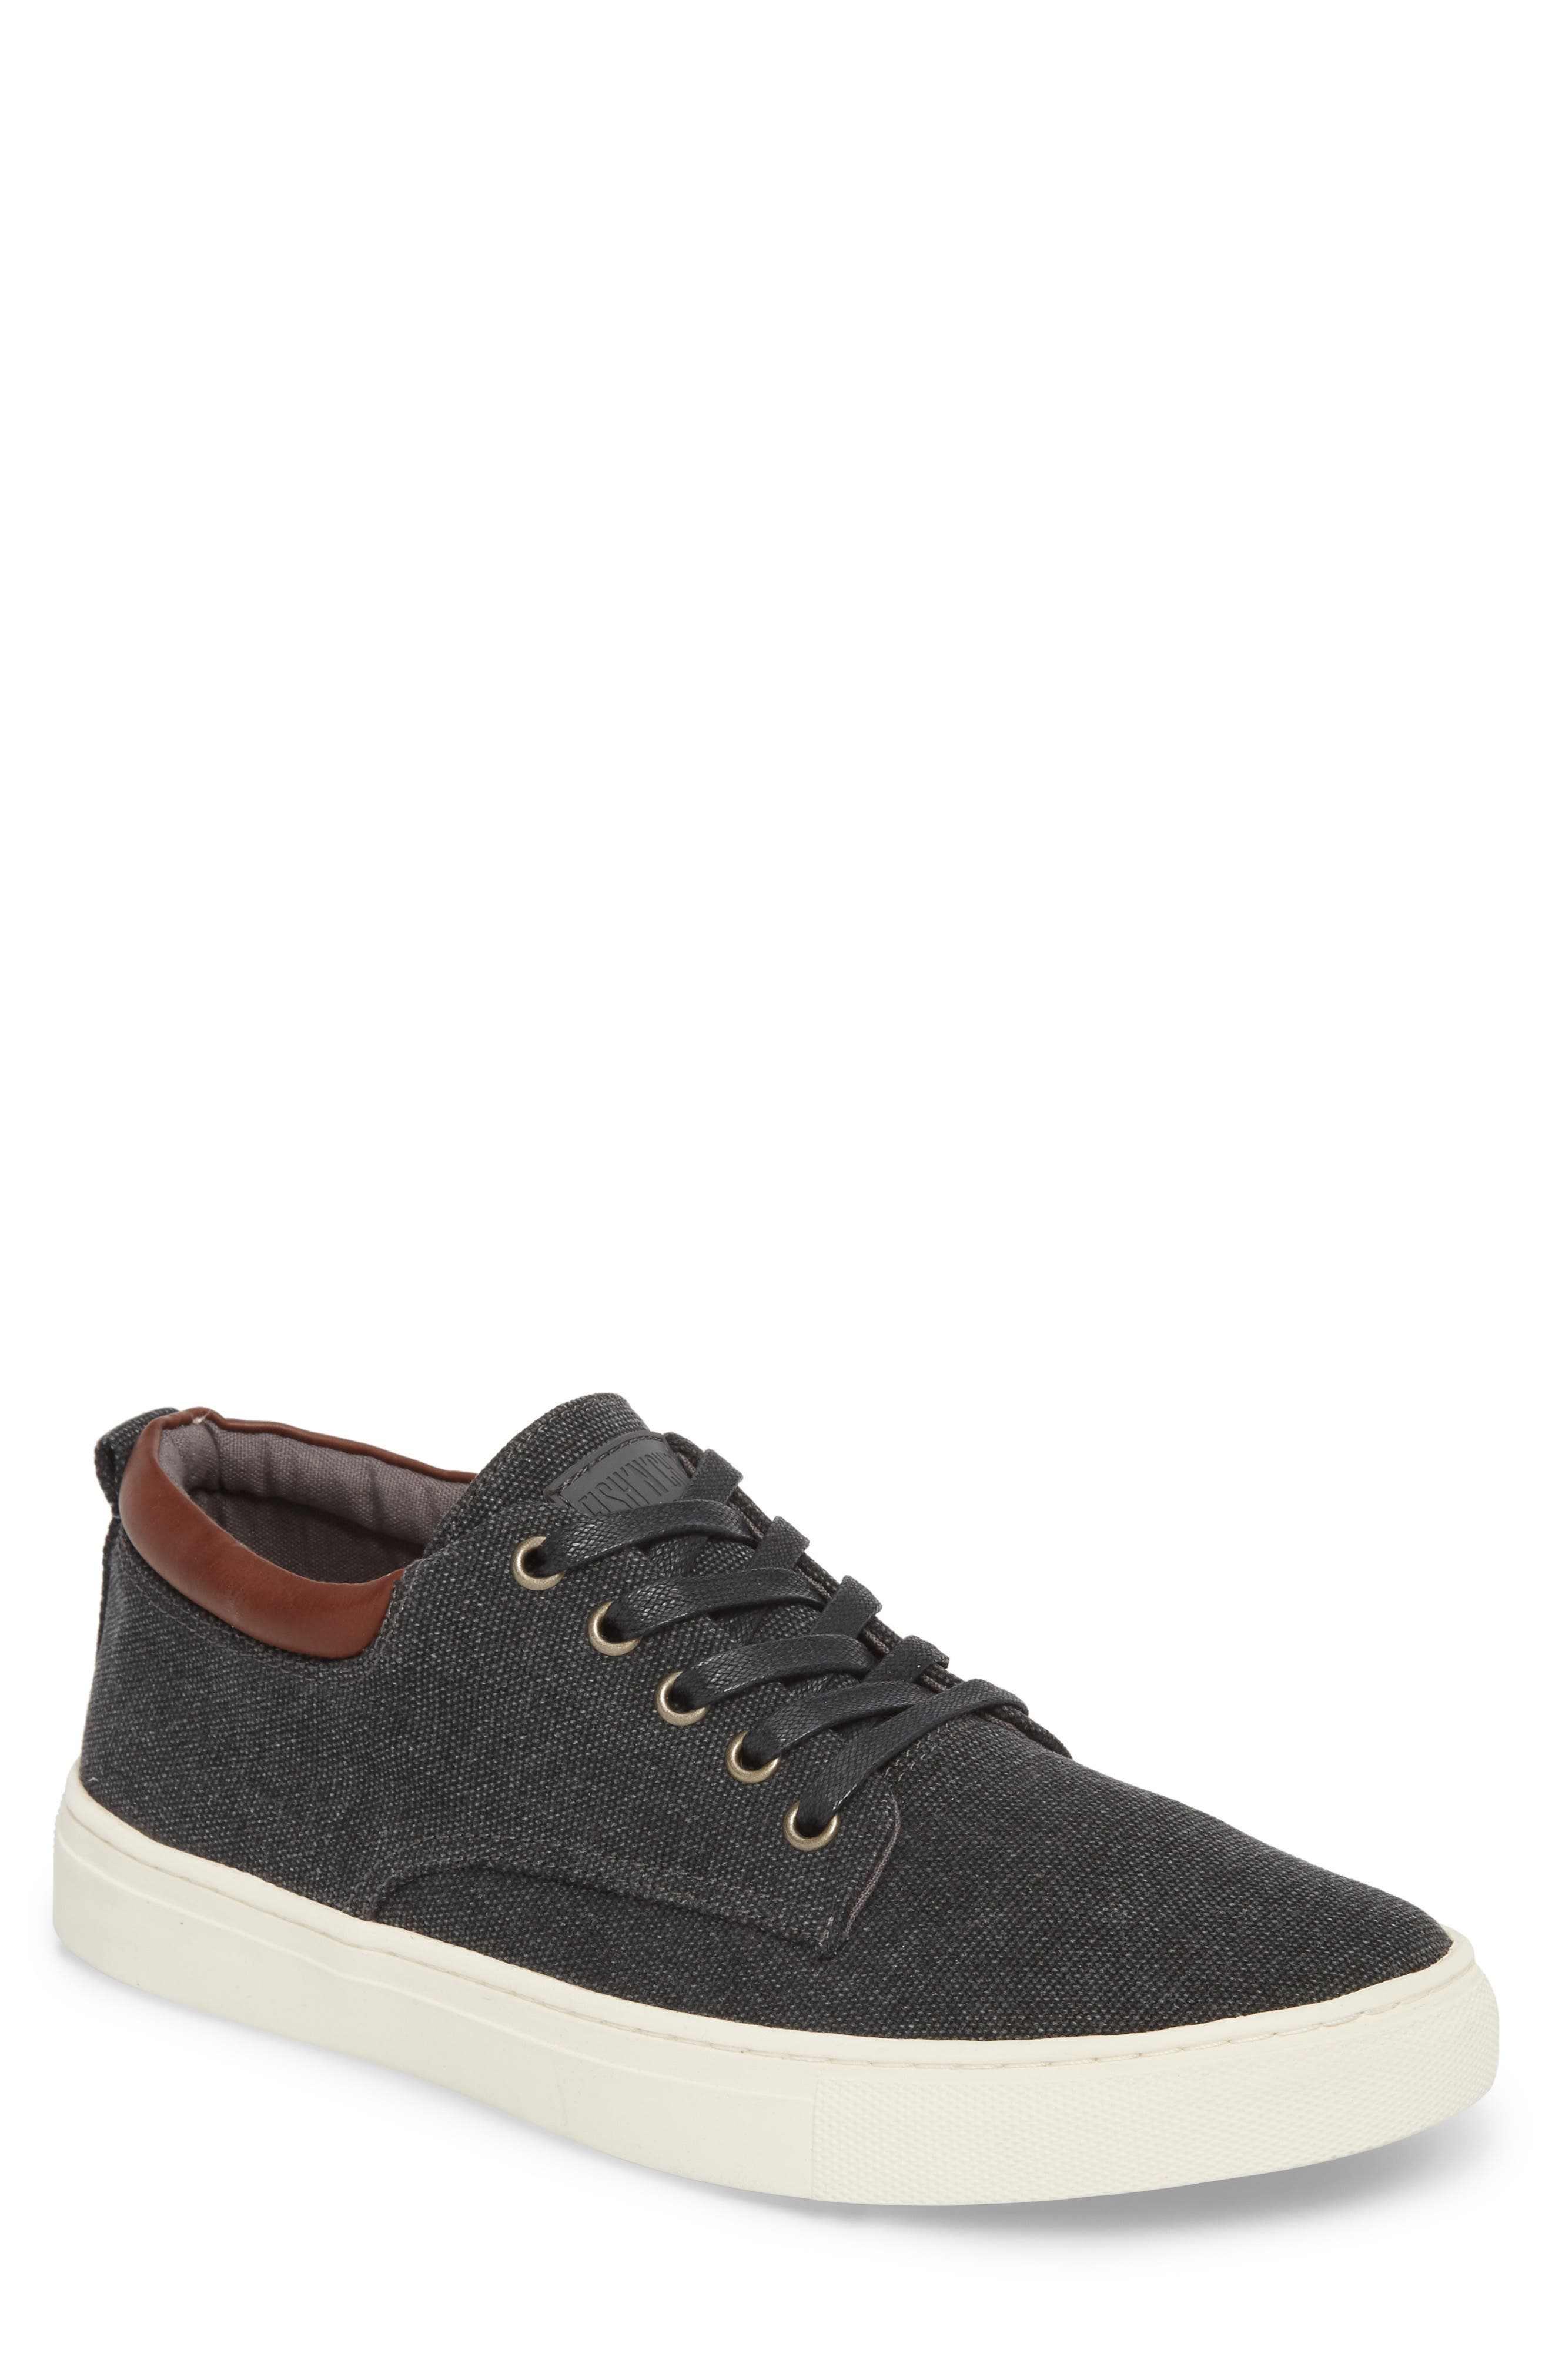 Fish 'N' Chips Hampton Low Top Sneaker,                             Main thumbnail 1, color,                             CHARCOAL FABRIC